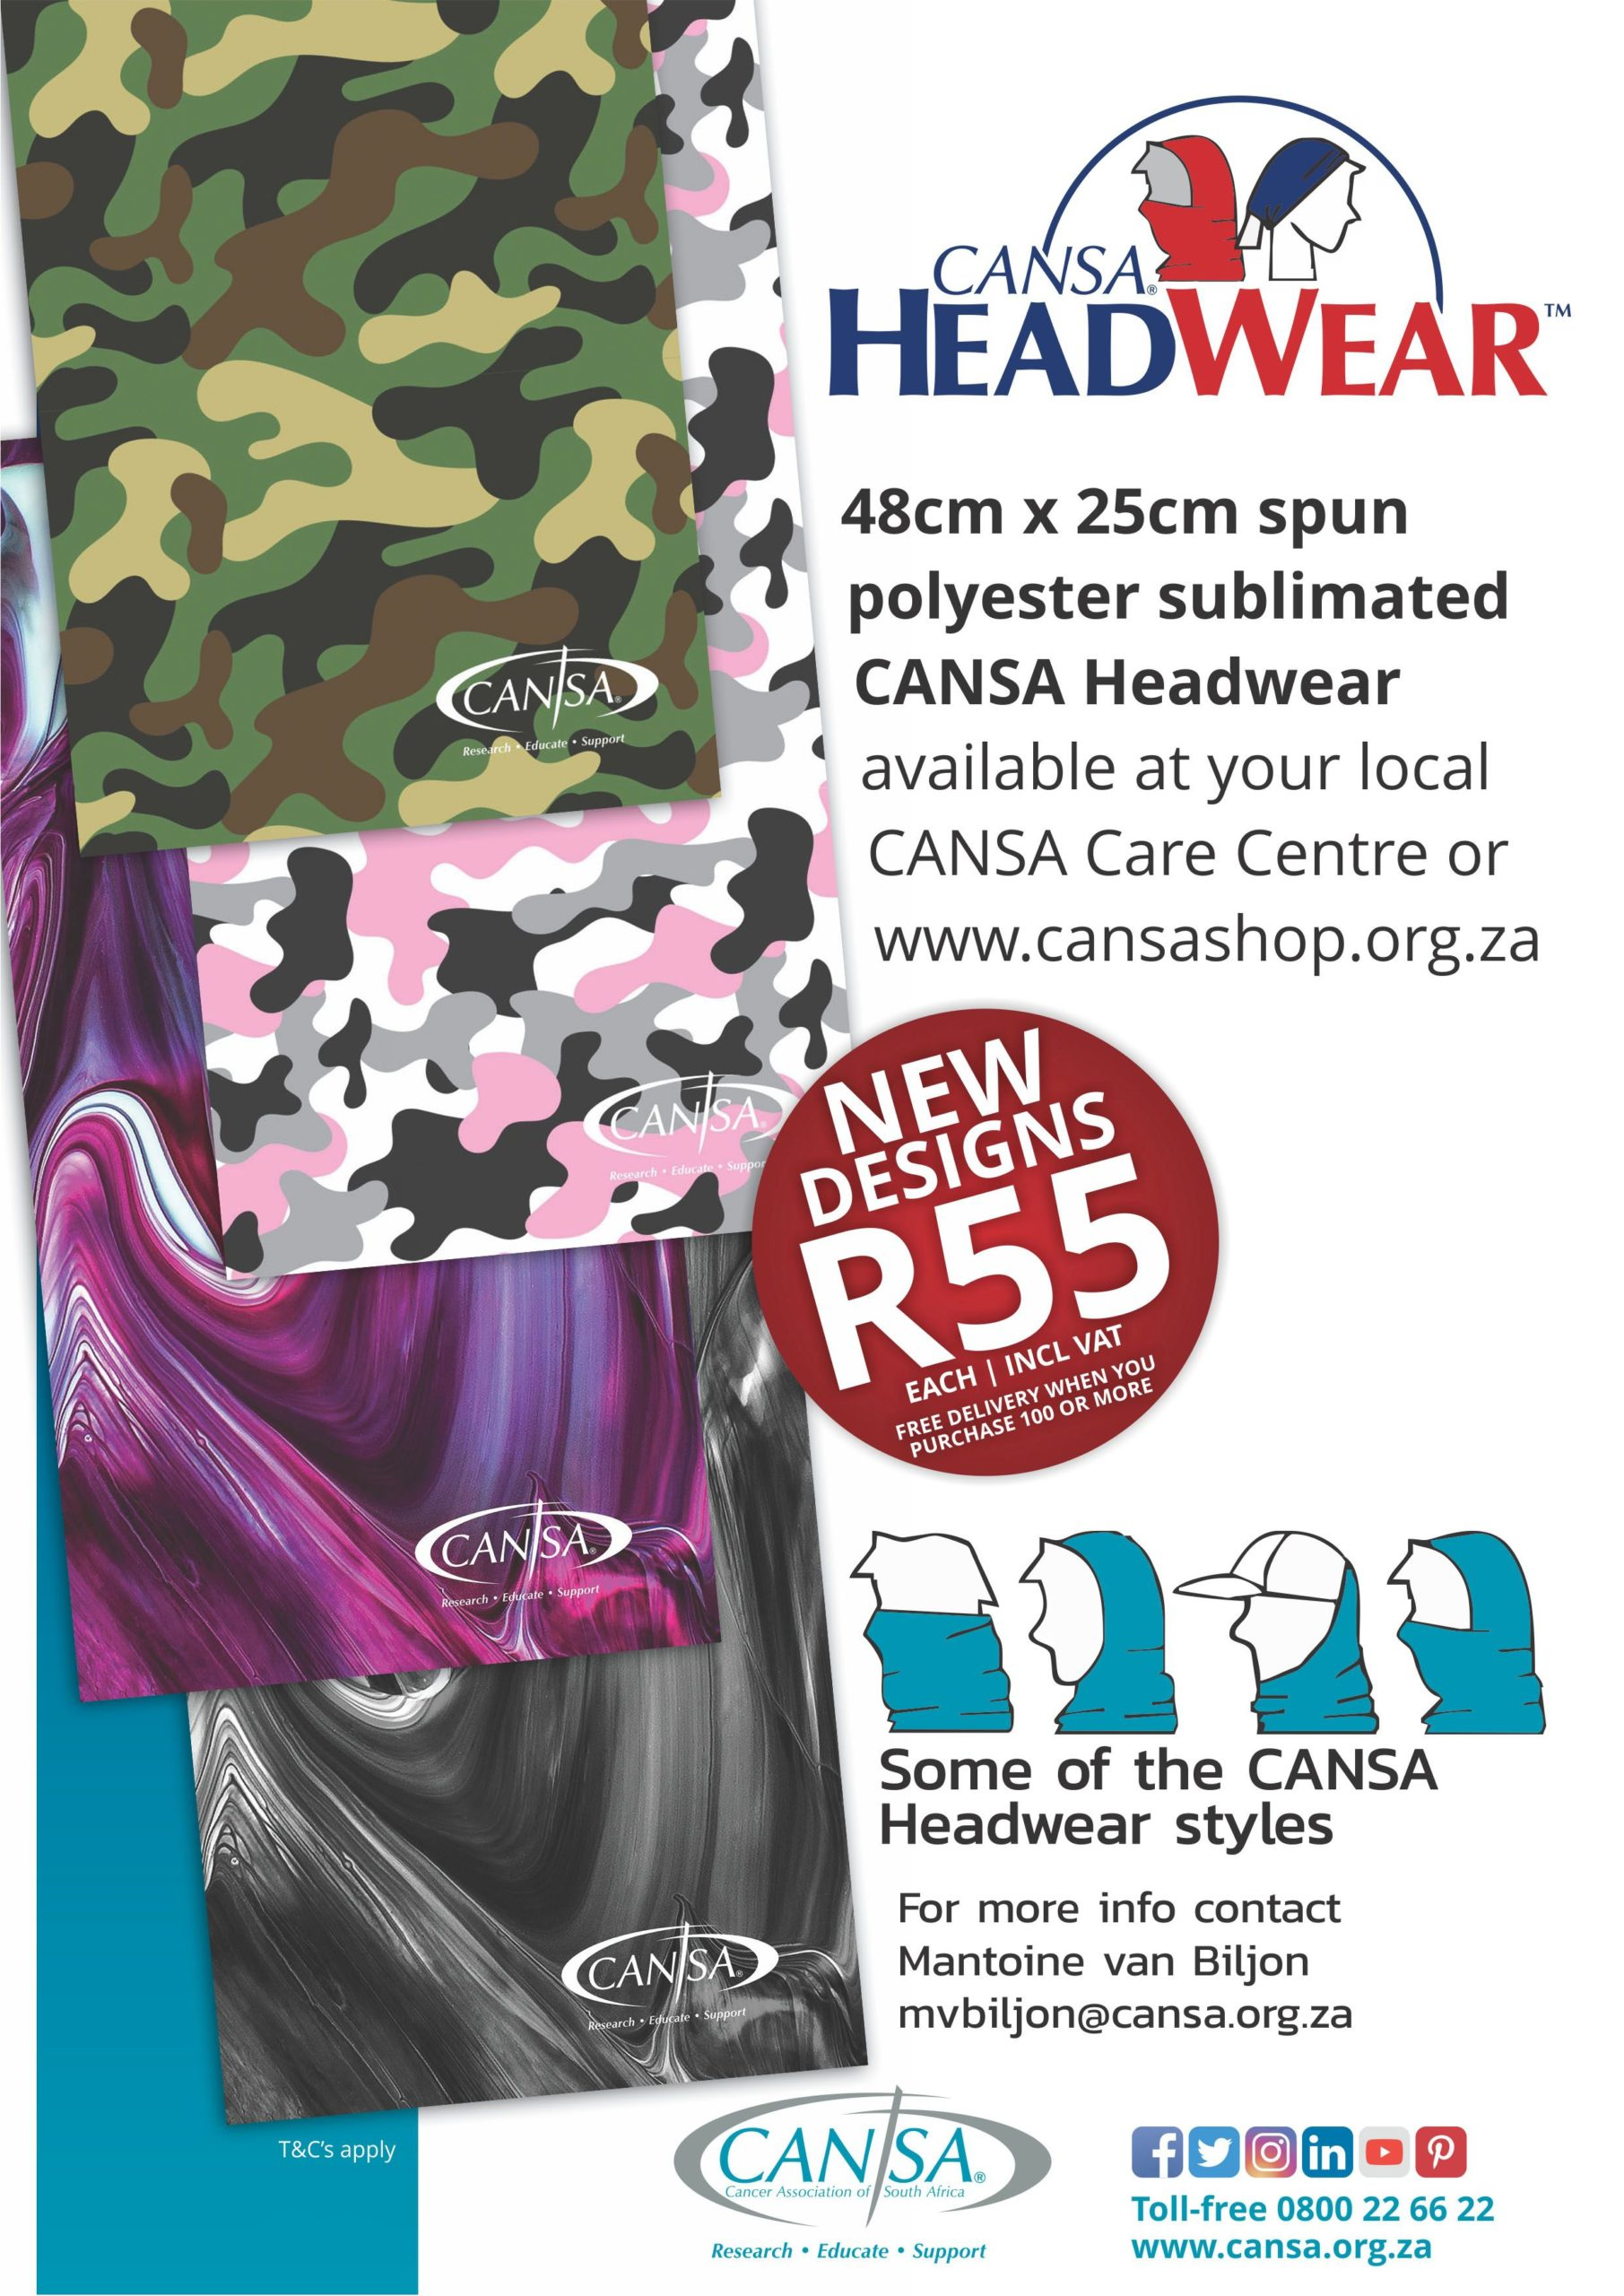 Cansa Headwear Face Masks And Face Shields Cansa The Cancer Association Of South Africa